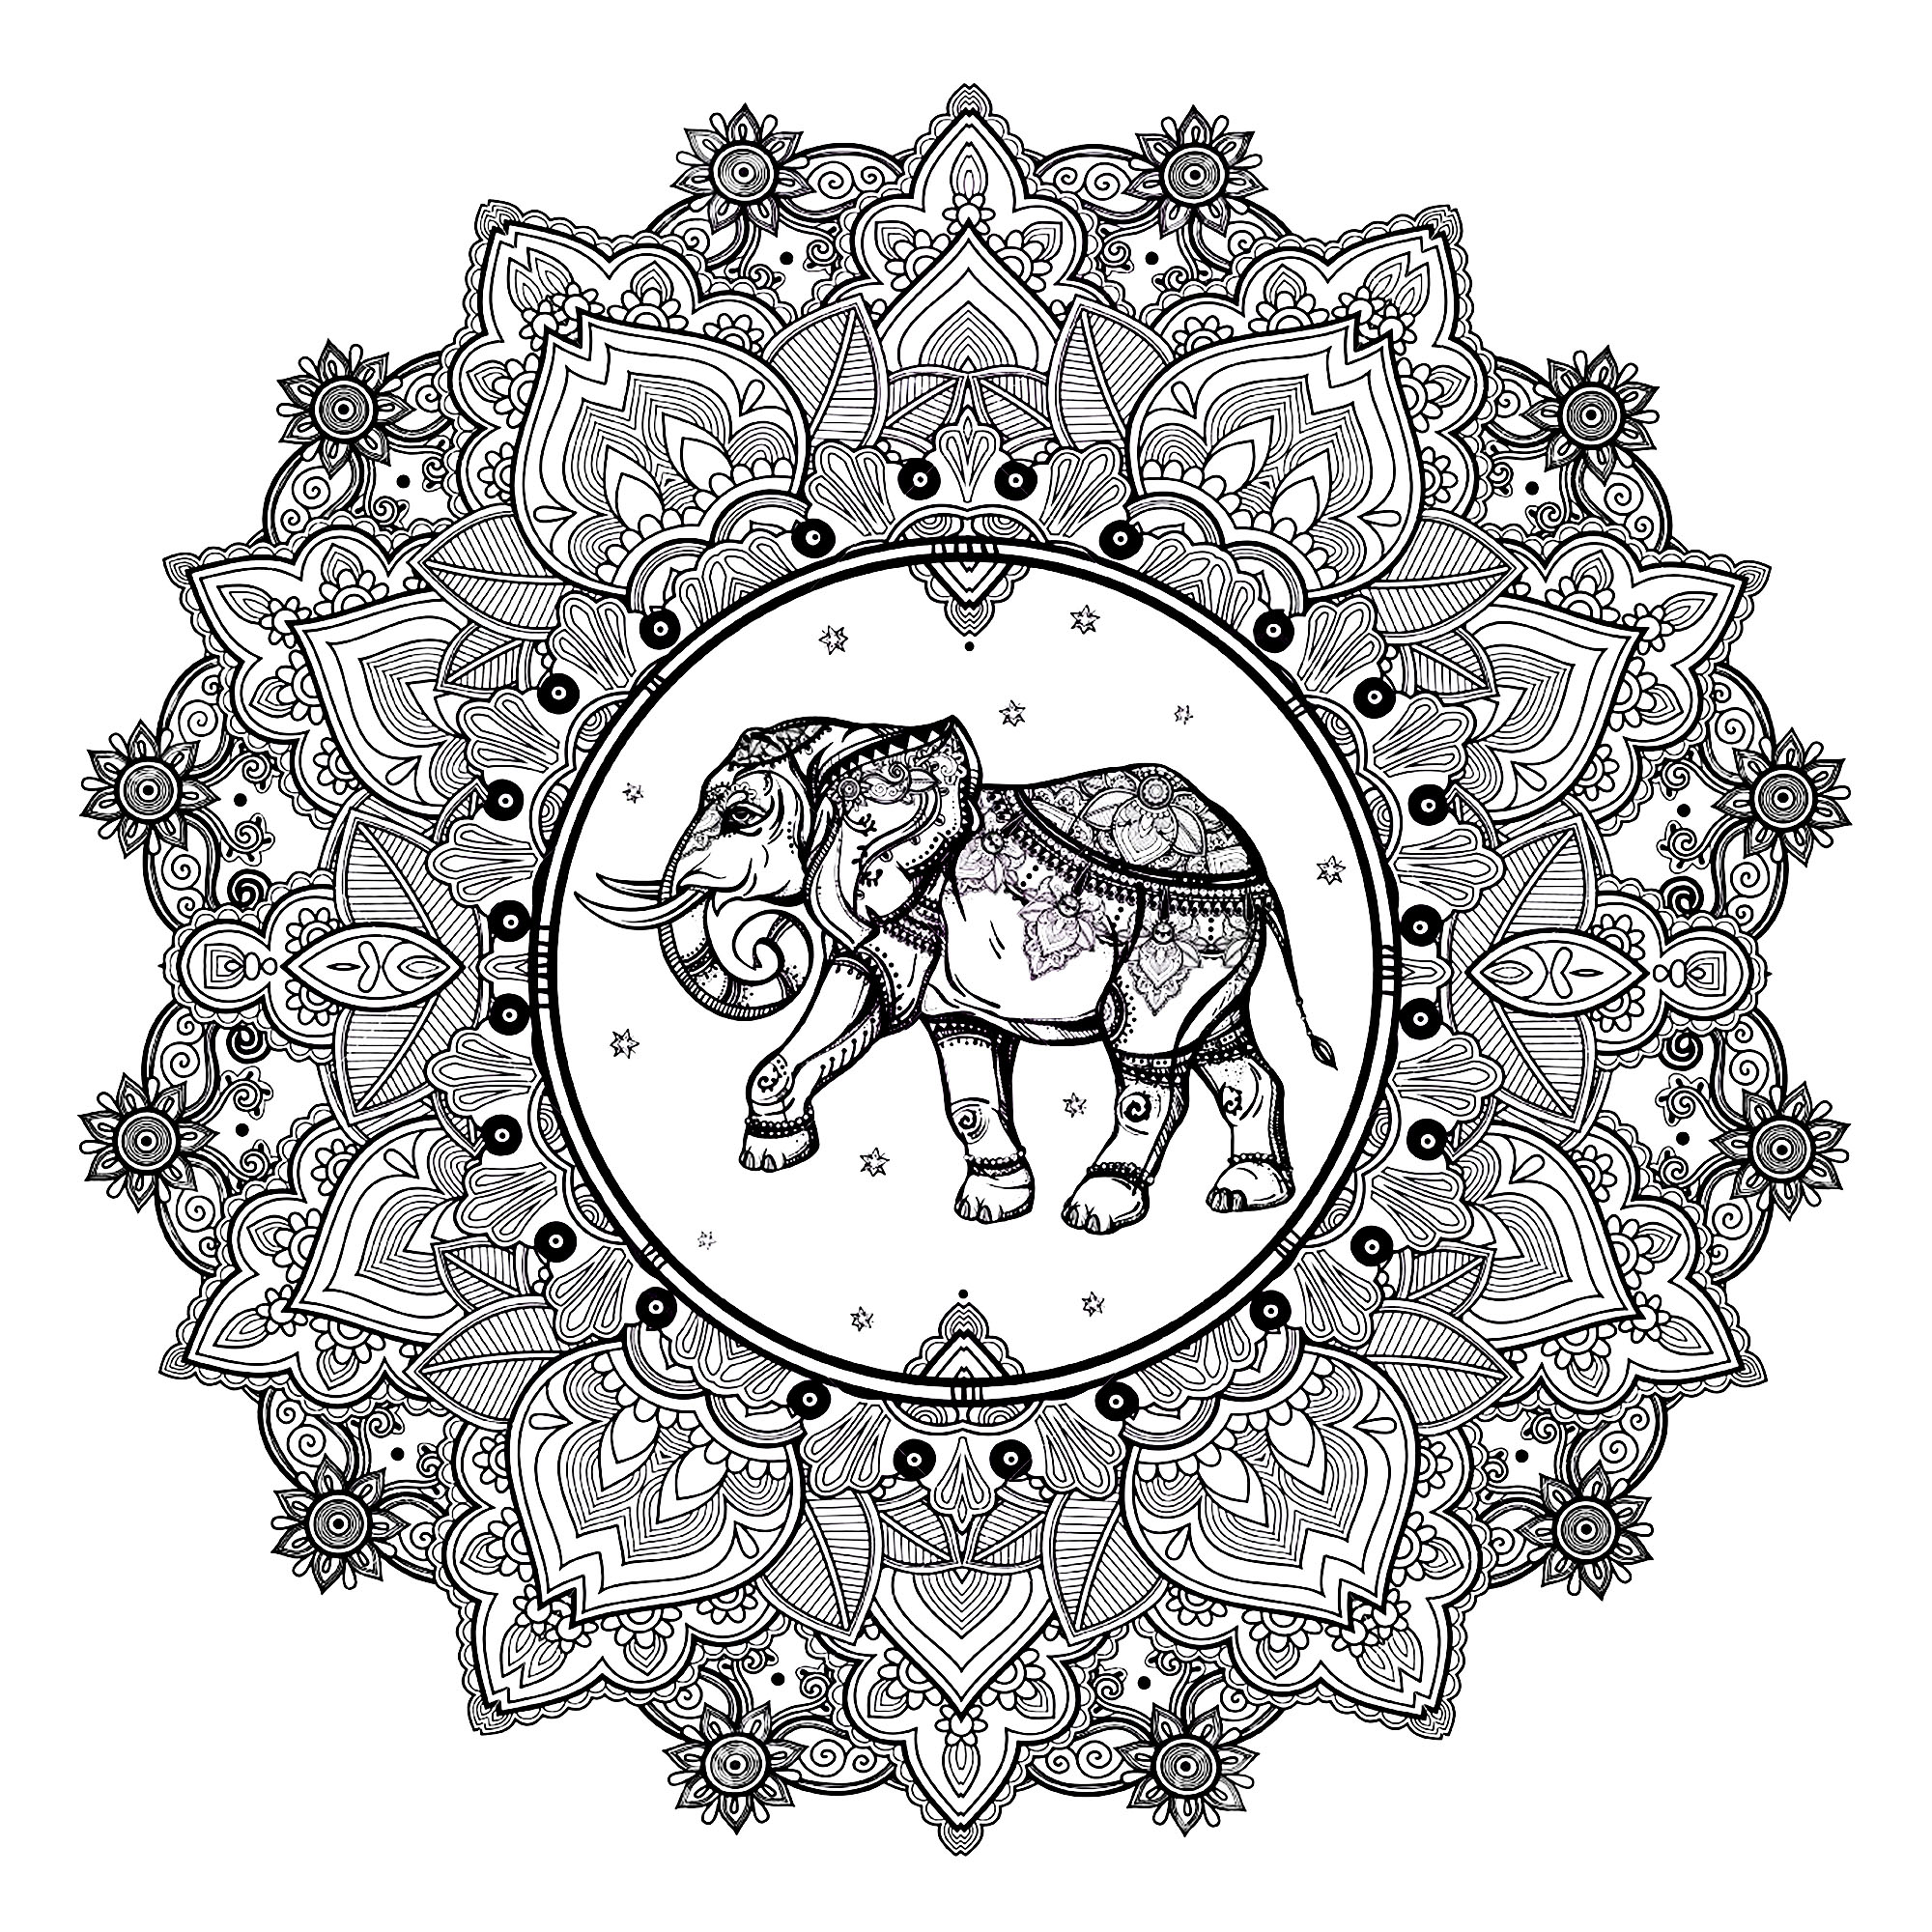 Elephant Adult Coloring Pages Mandala Elephant Coloring Pages Mandala Elephant 123rf M Alas